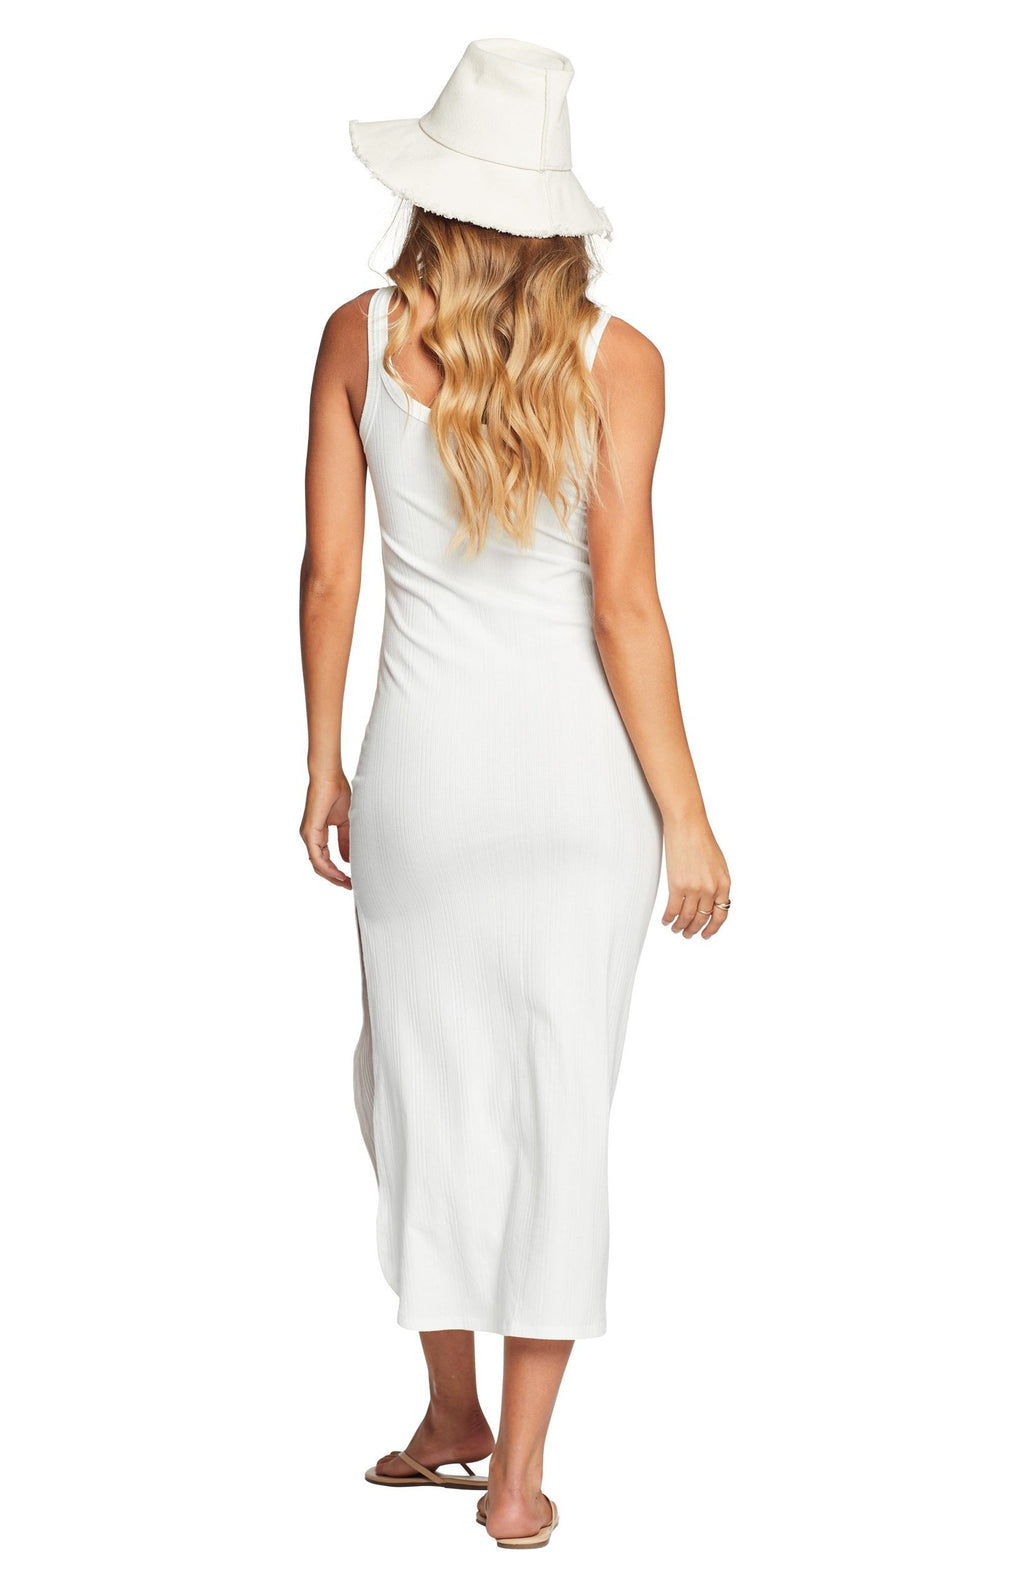 Vitamin A West Tank Dress in White Organic Rib back view